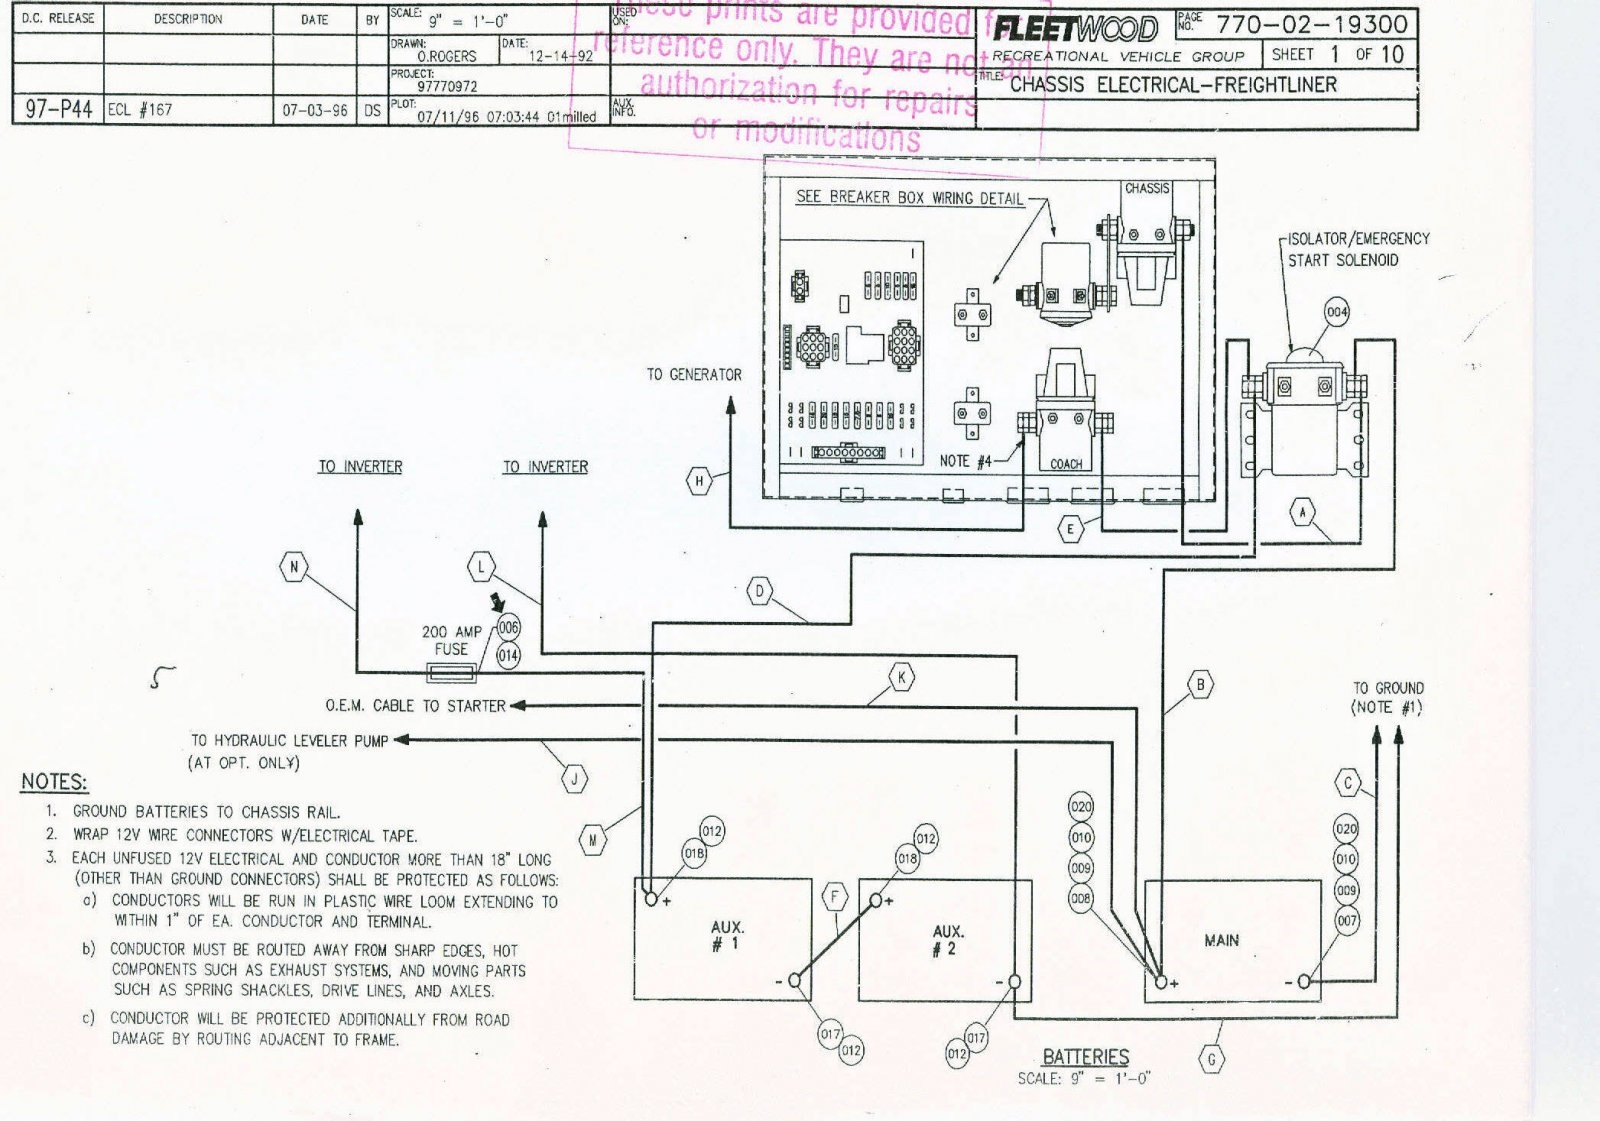 1984 Pace Arrow Wiring Diagram | Wiring Diagram